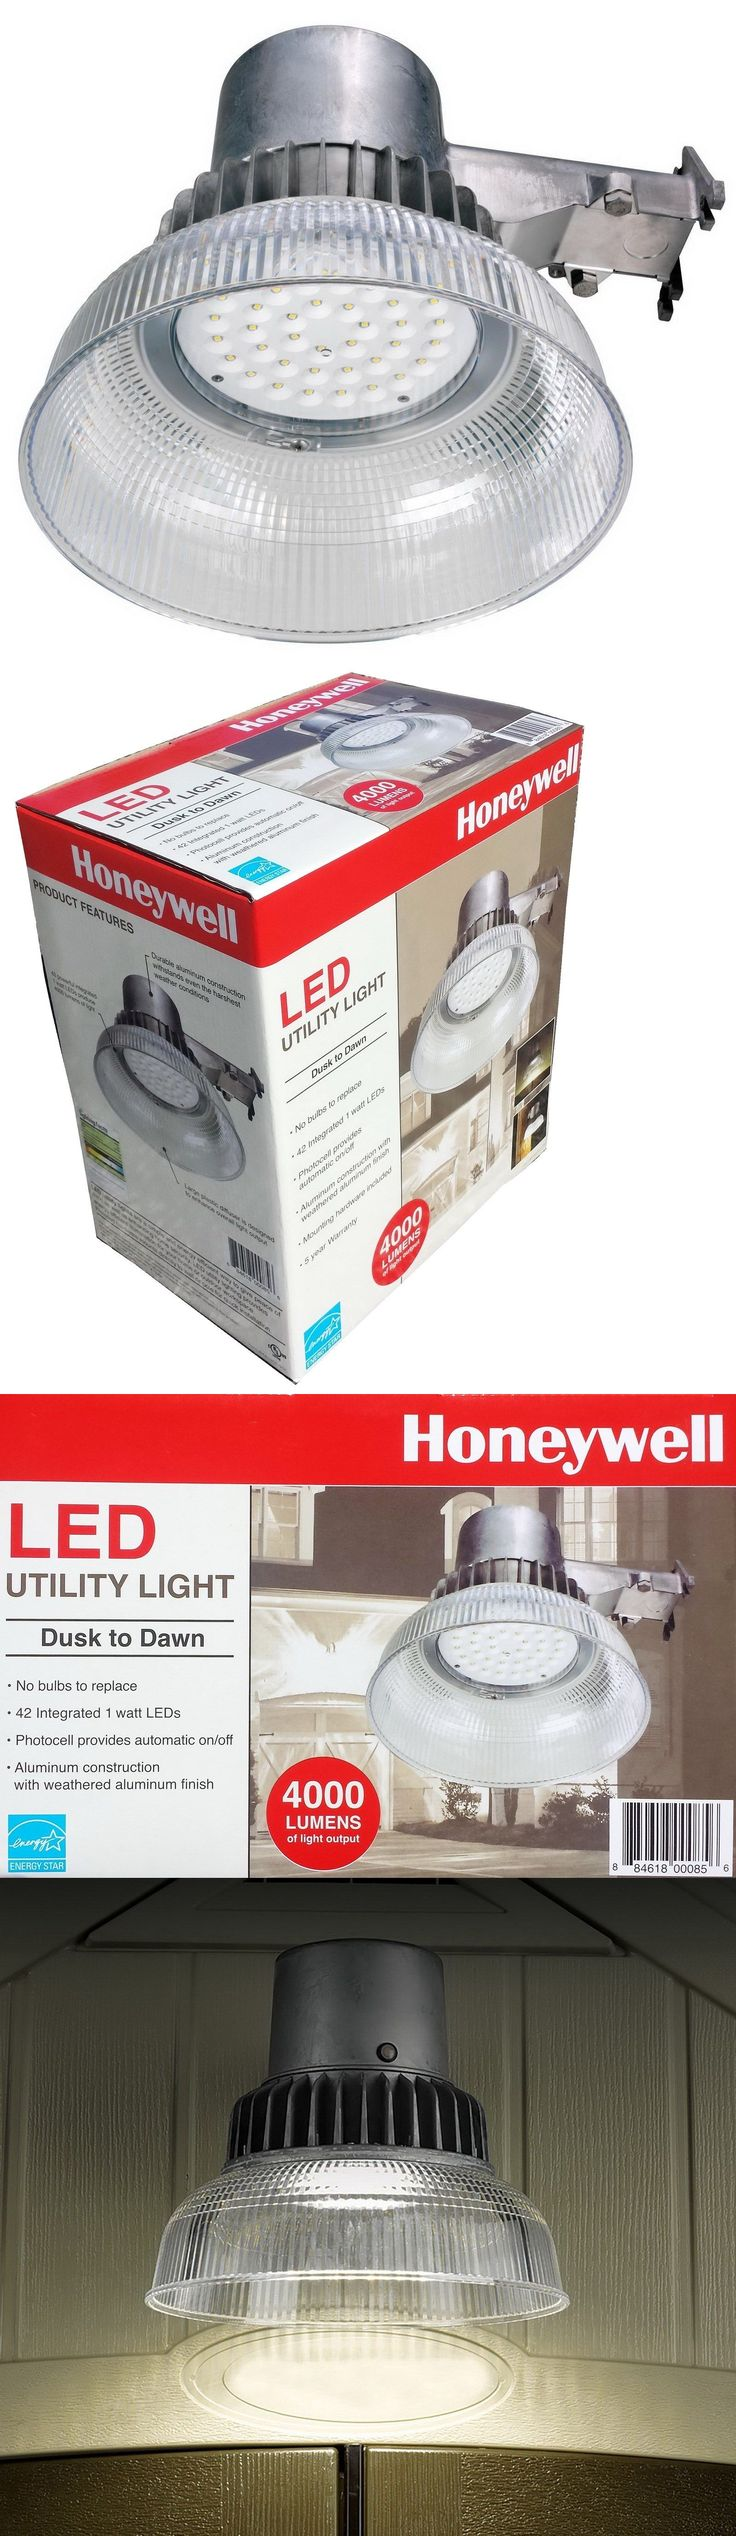 Outdoor Security and Floodlights 183393: New Honeywell Outdoor Led Security Light 4000 Lumen Dusk To Dawn Wall Lamp -> BUY IT NOW ONLY: $58.89 on eBay!